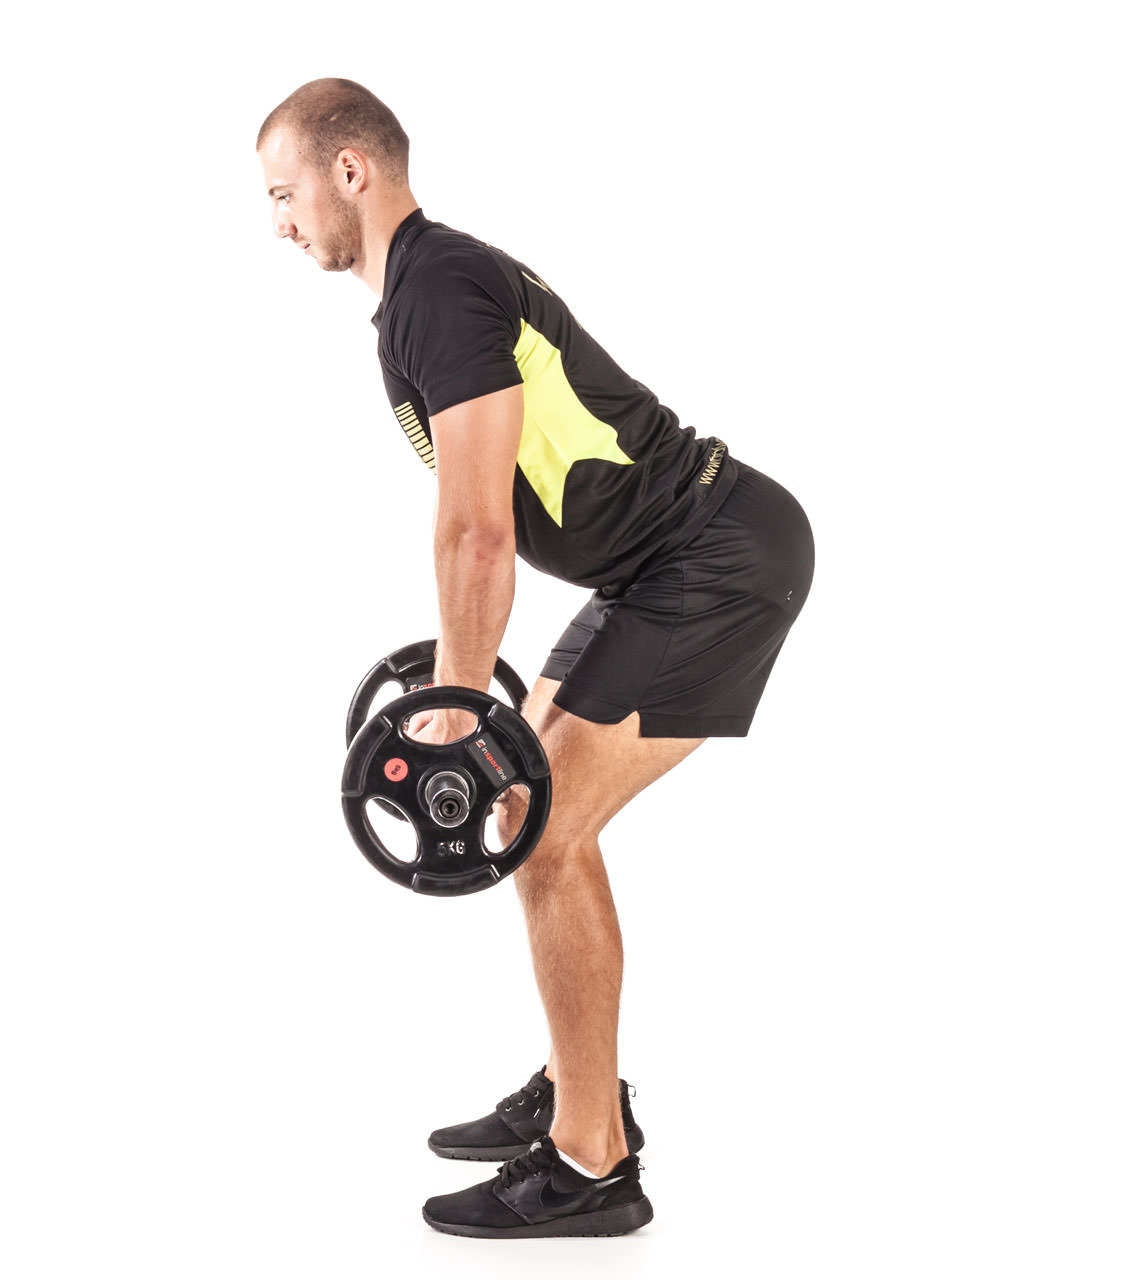 Bent Over Barbell Row frame #6